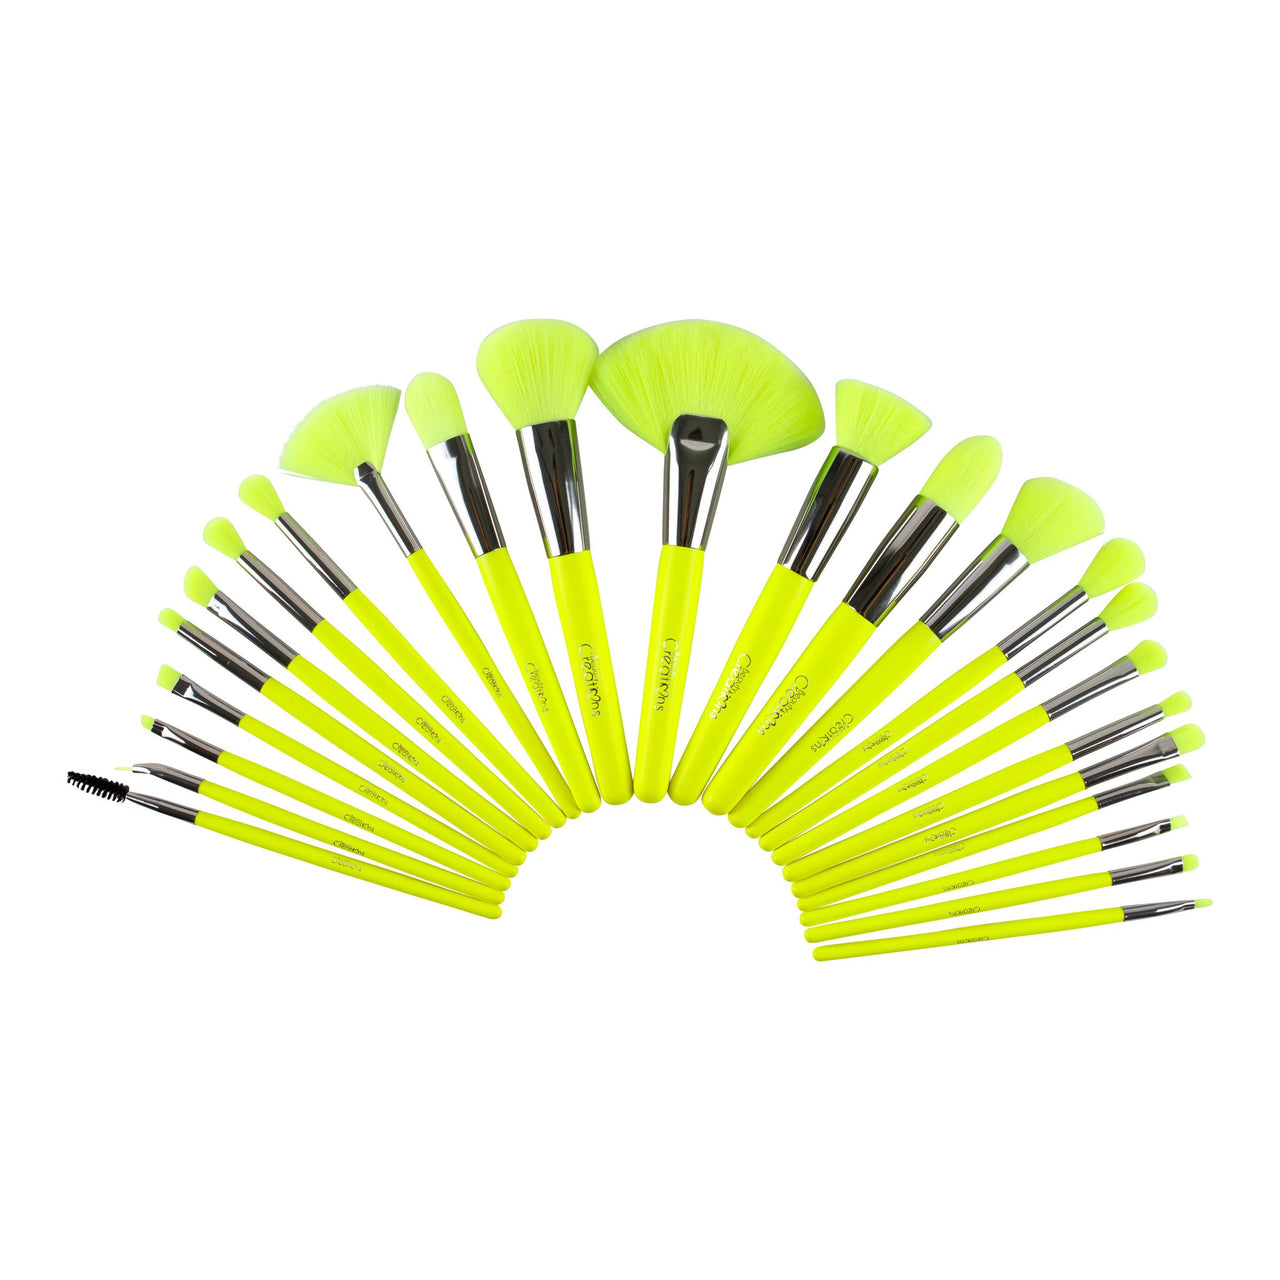 BC-B24NY : The Neon Yellow 24 Piece Brush Set 3 PC